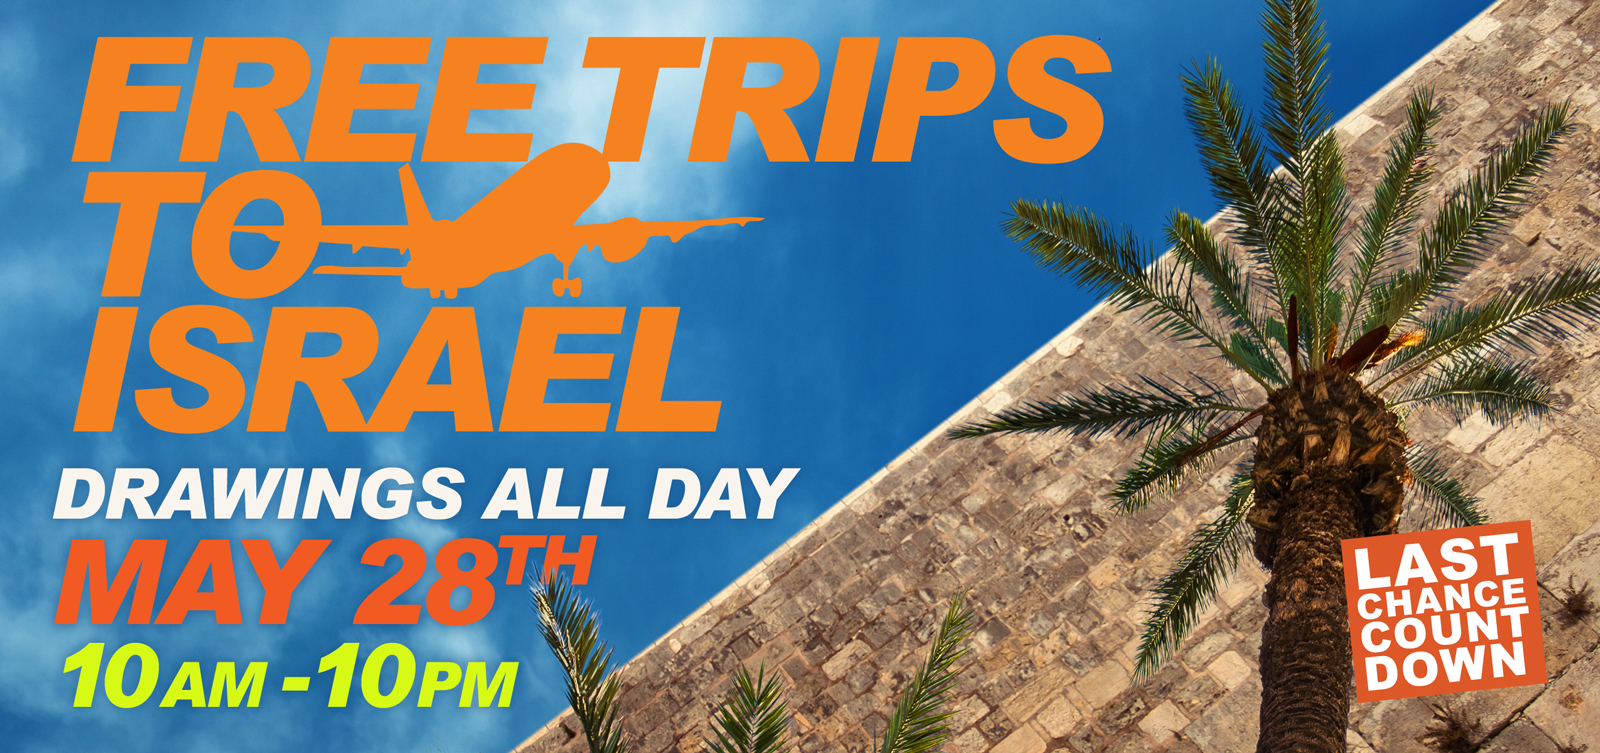 Last Chance Countdown - Free trips to Israel, Drawings all day May 28th 10am-10pm